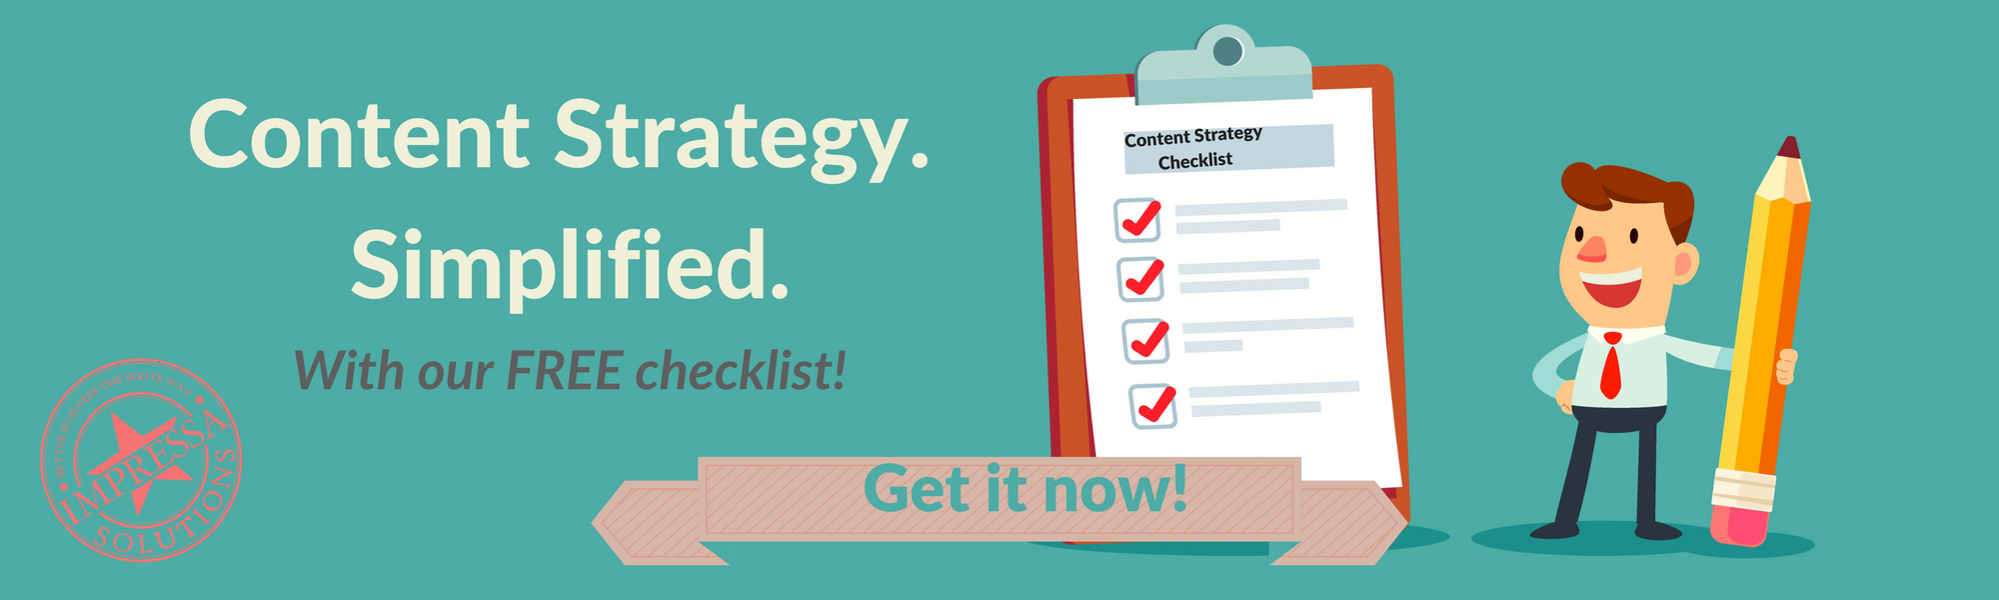 Get your content strategy checklist!